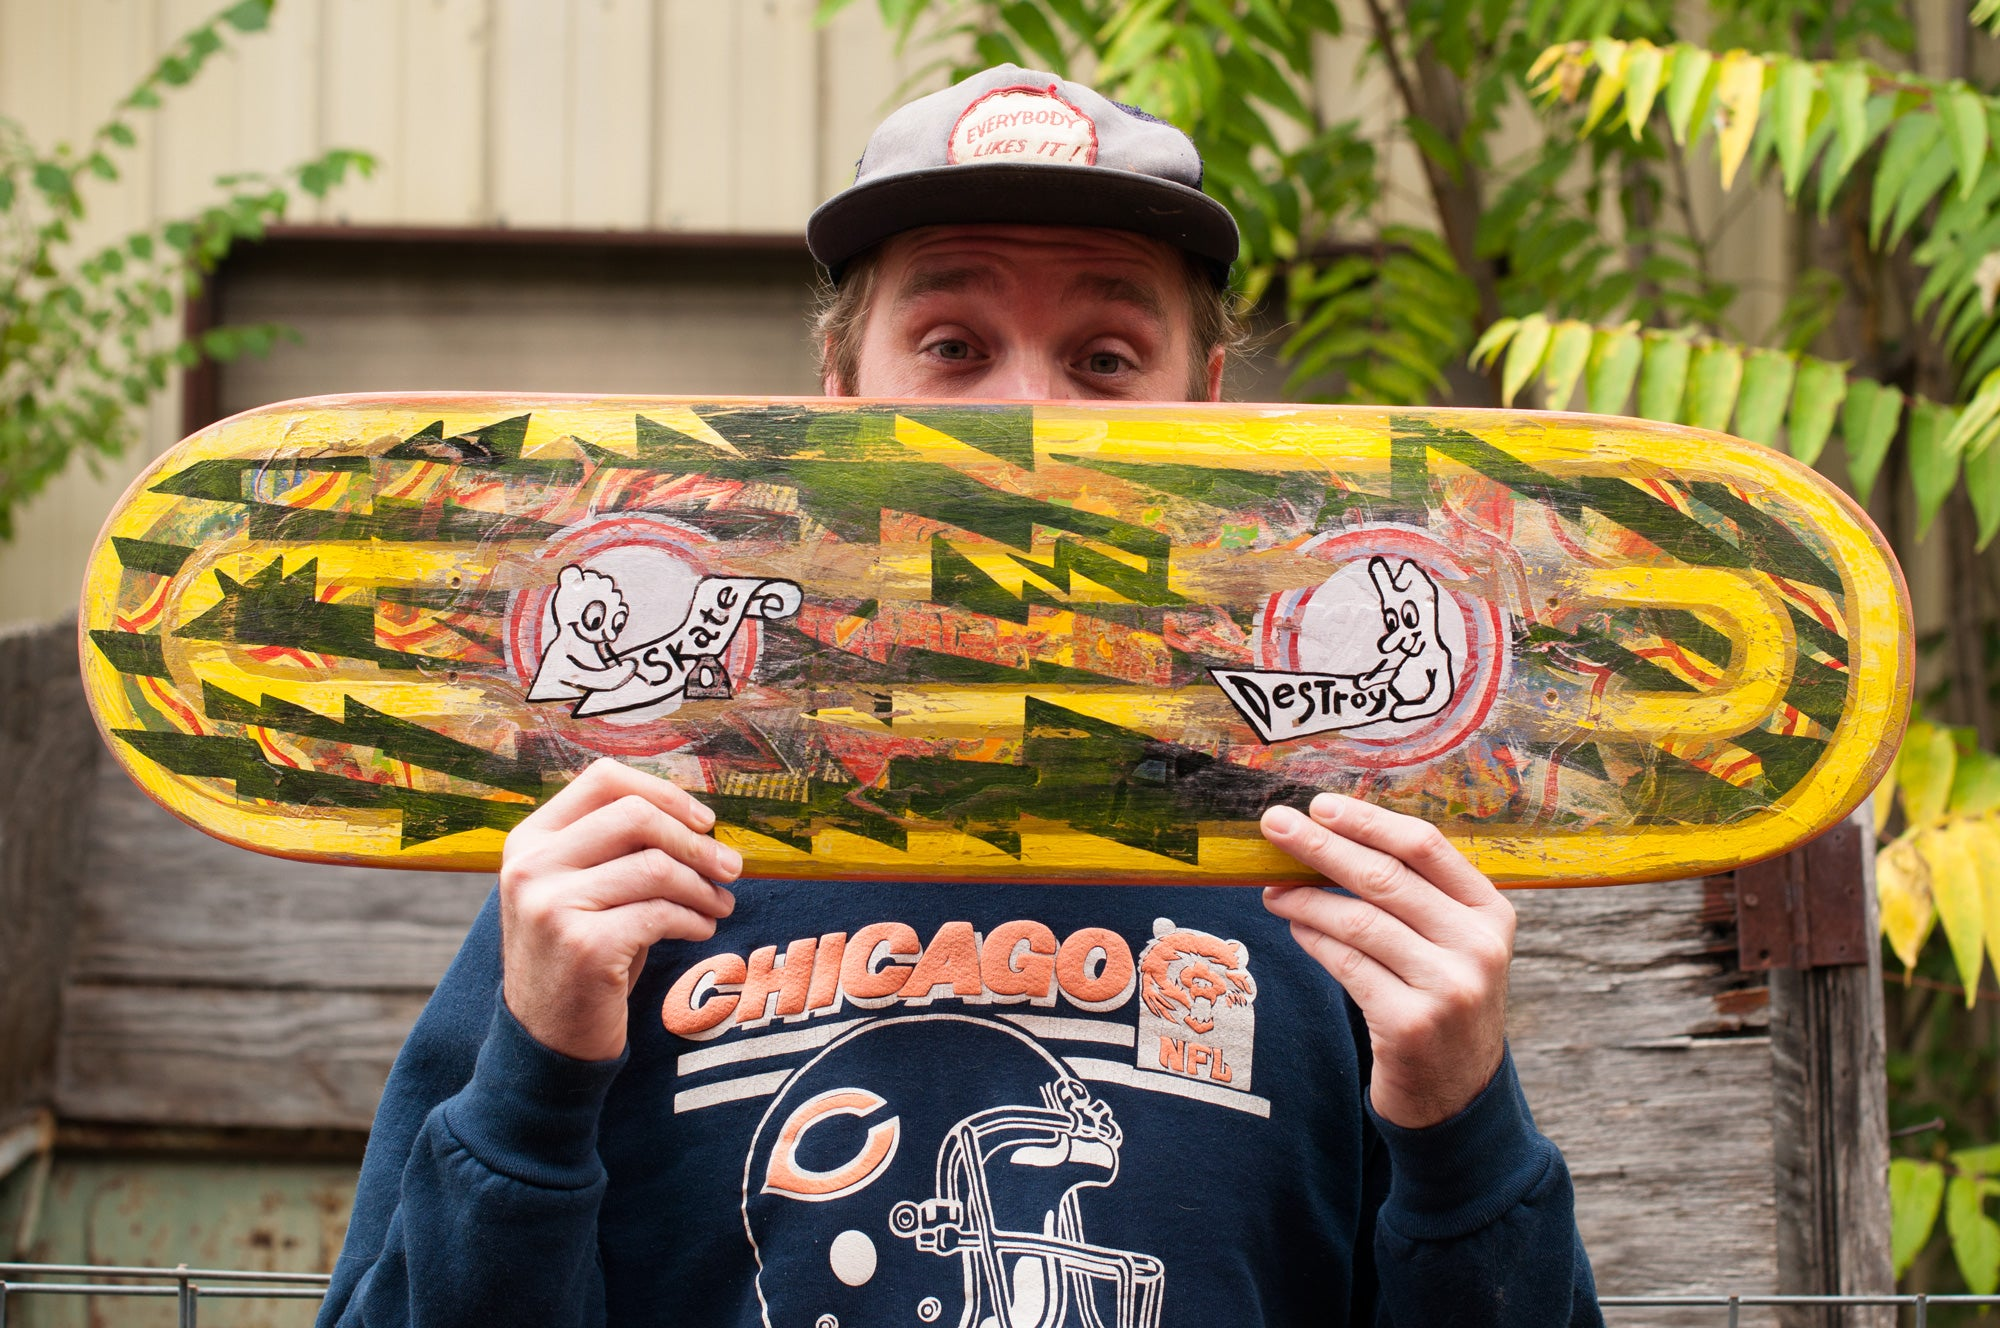 Mason Mcfee interview photo with skateboard